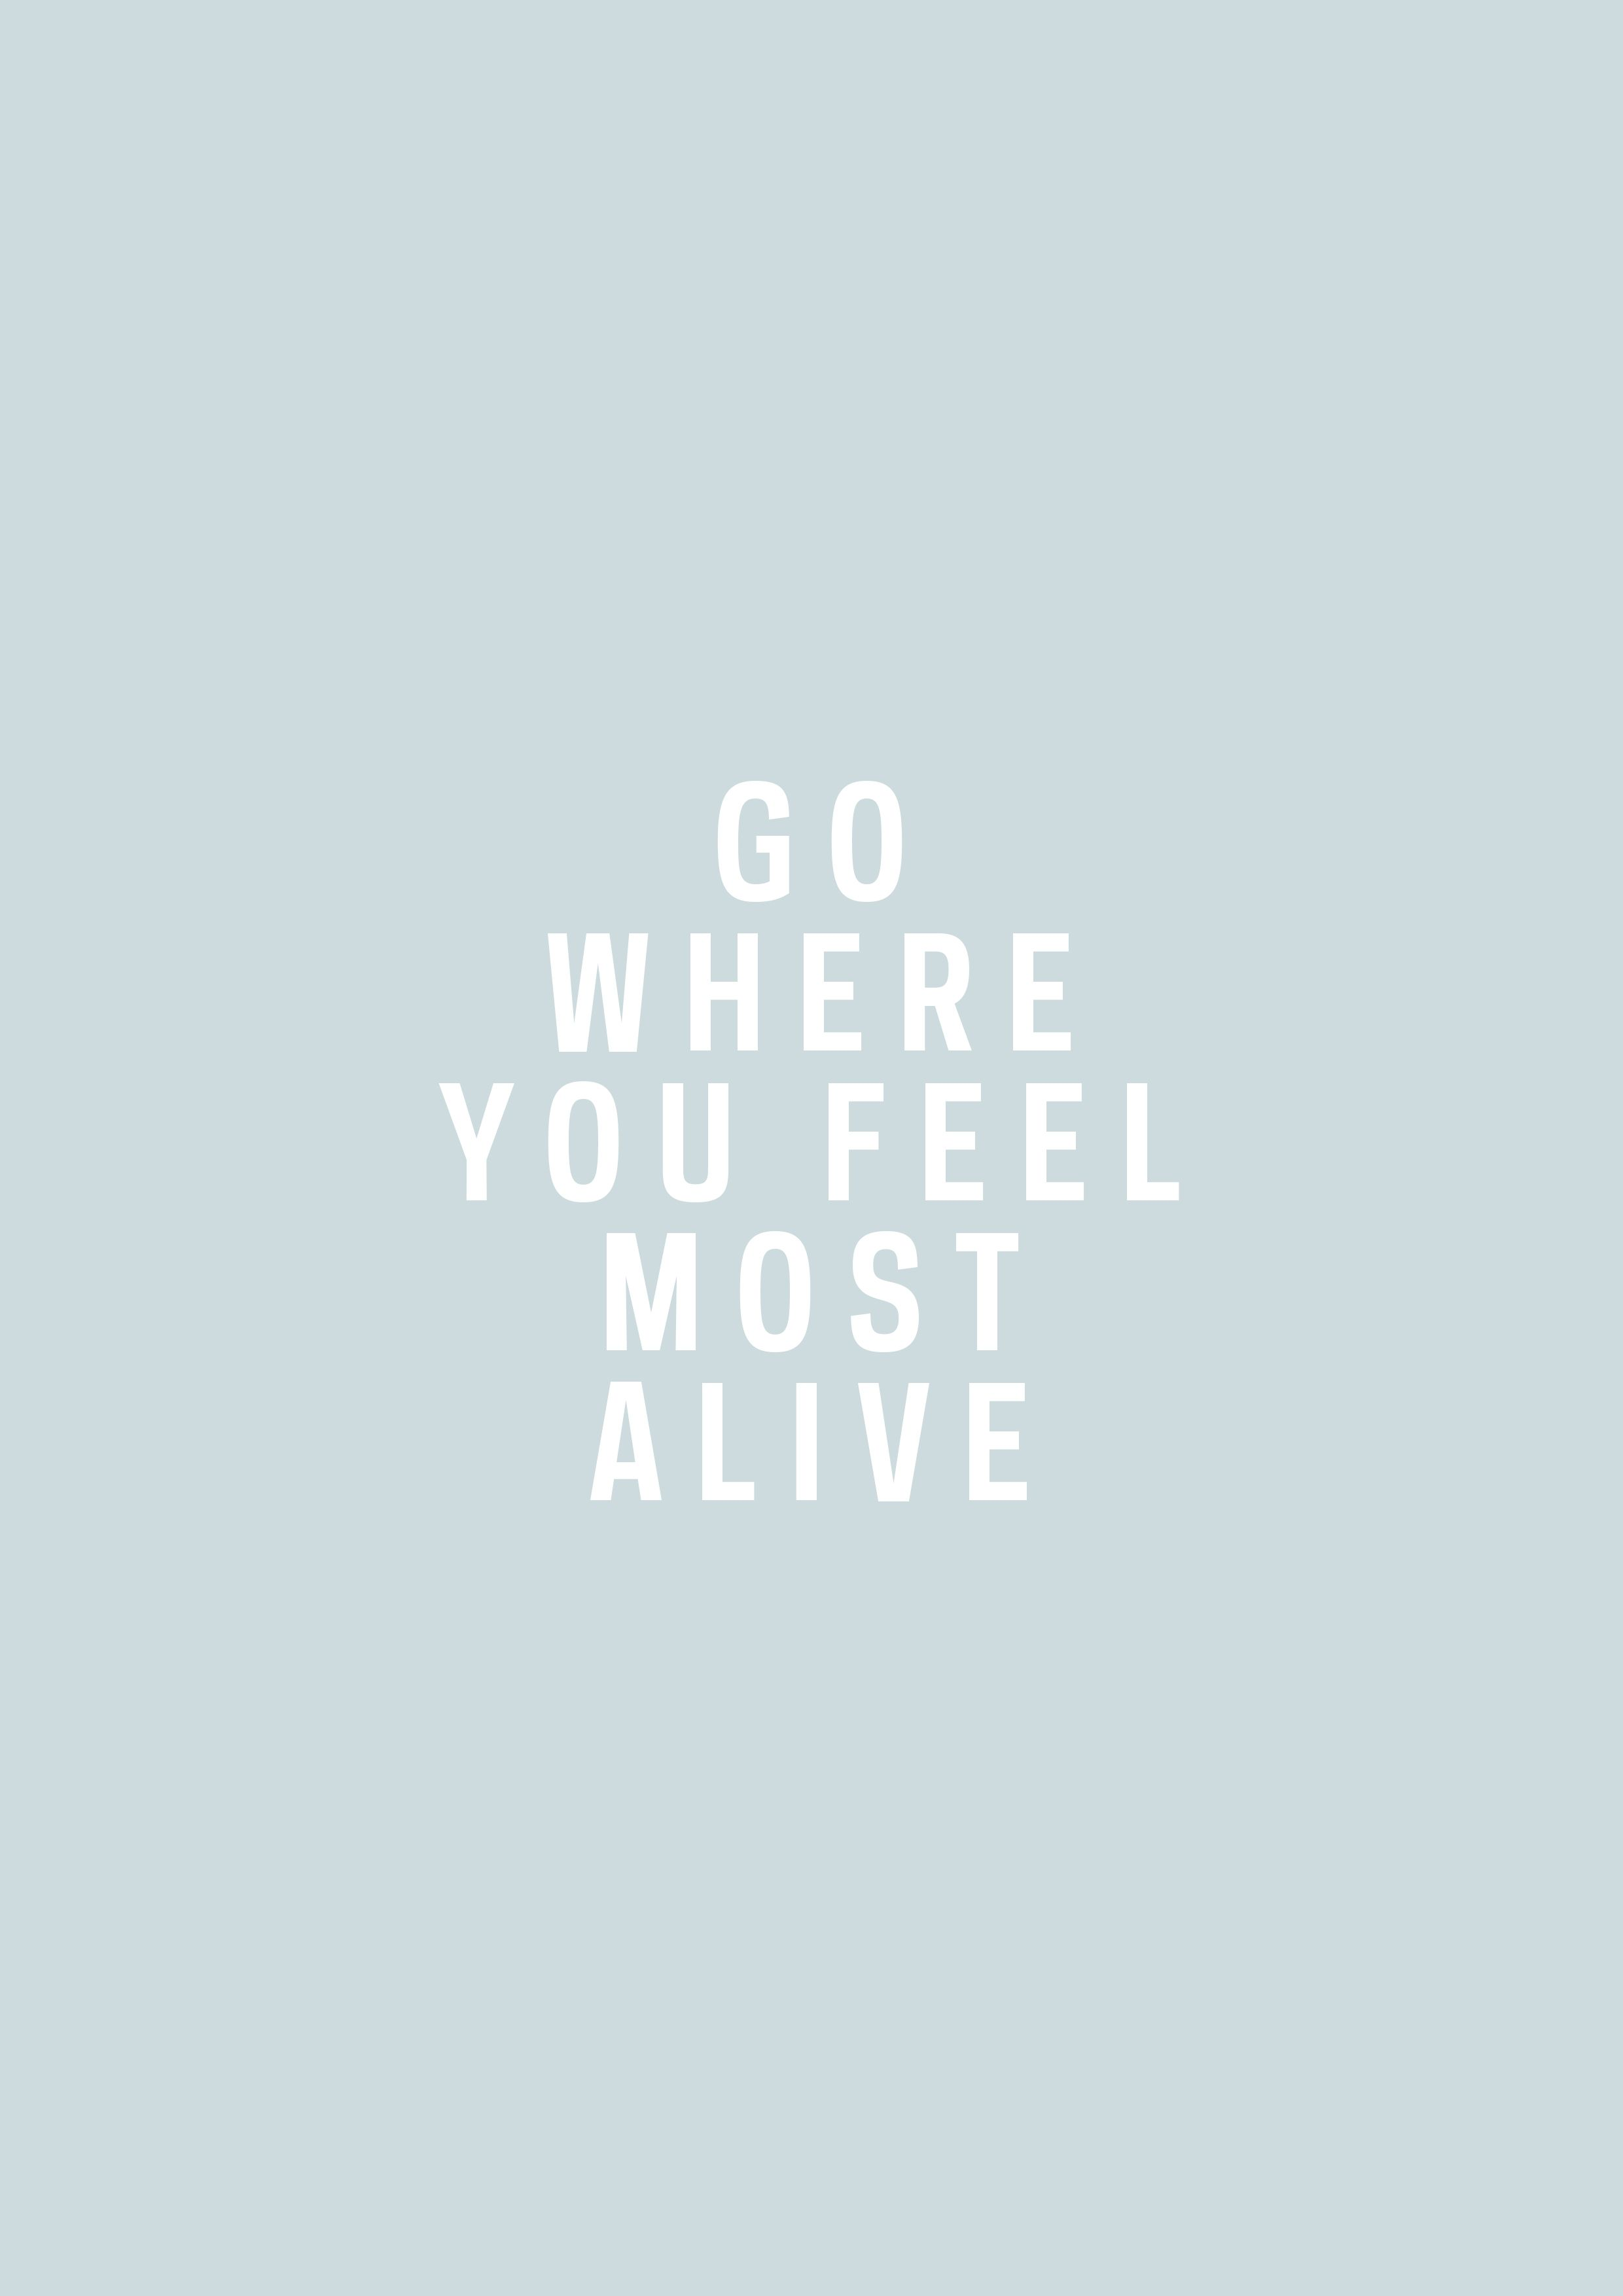 Go where you feel most alive